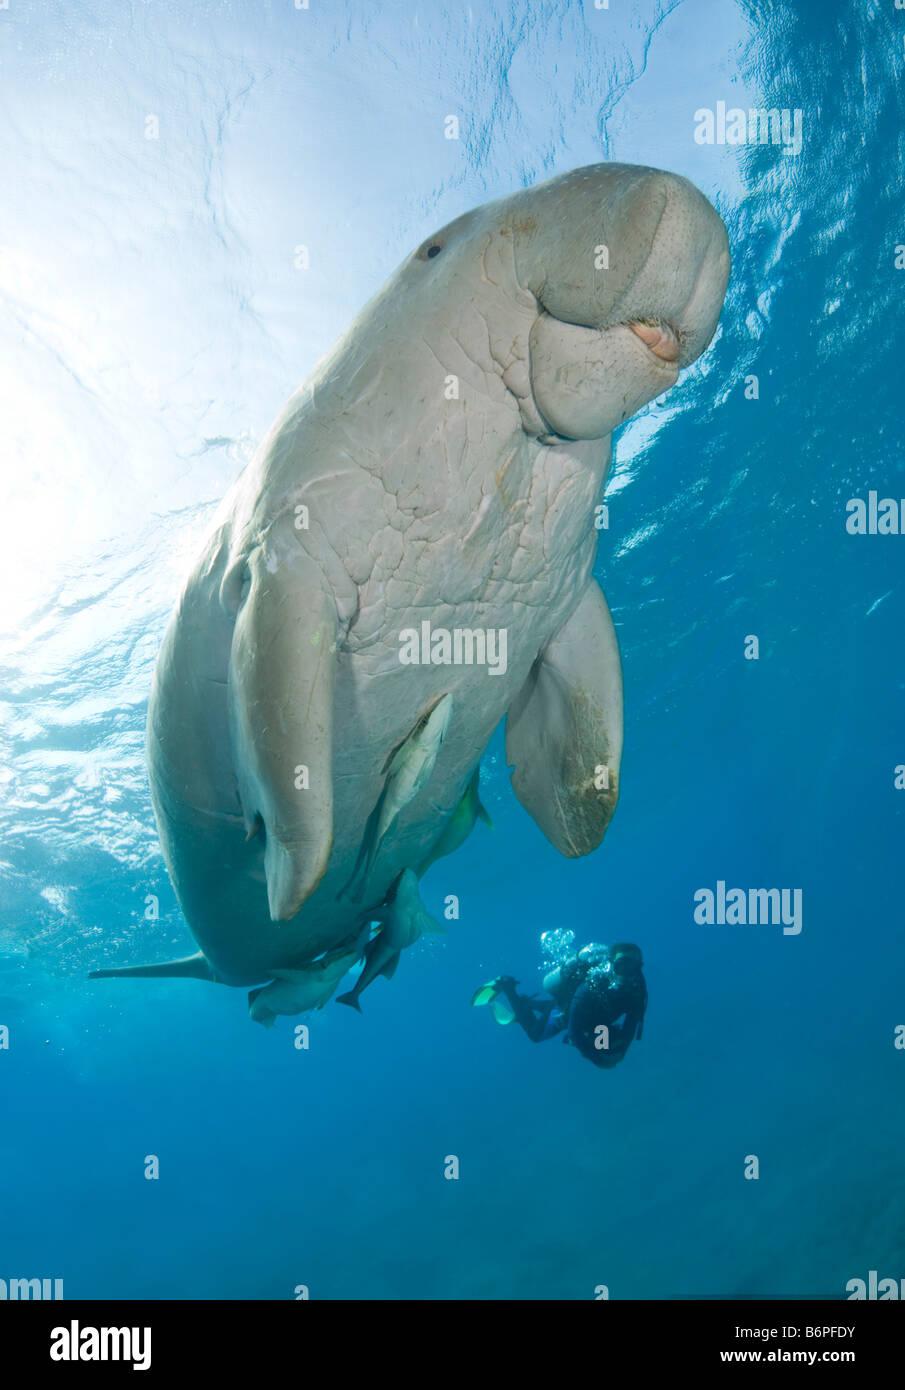 Dugong or sea cow ascending to the surface to breathe. - Stock Image